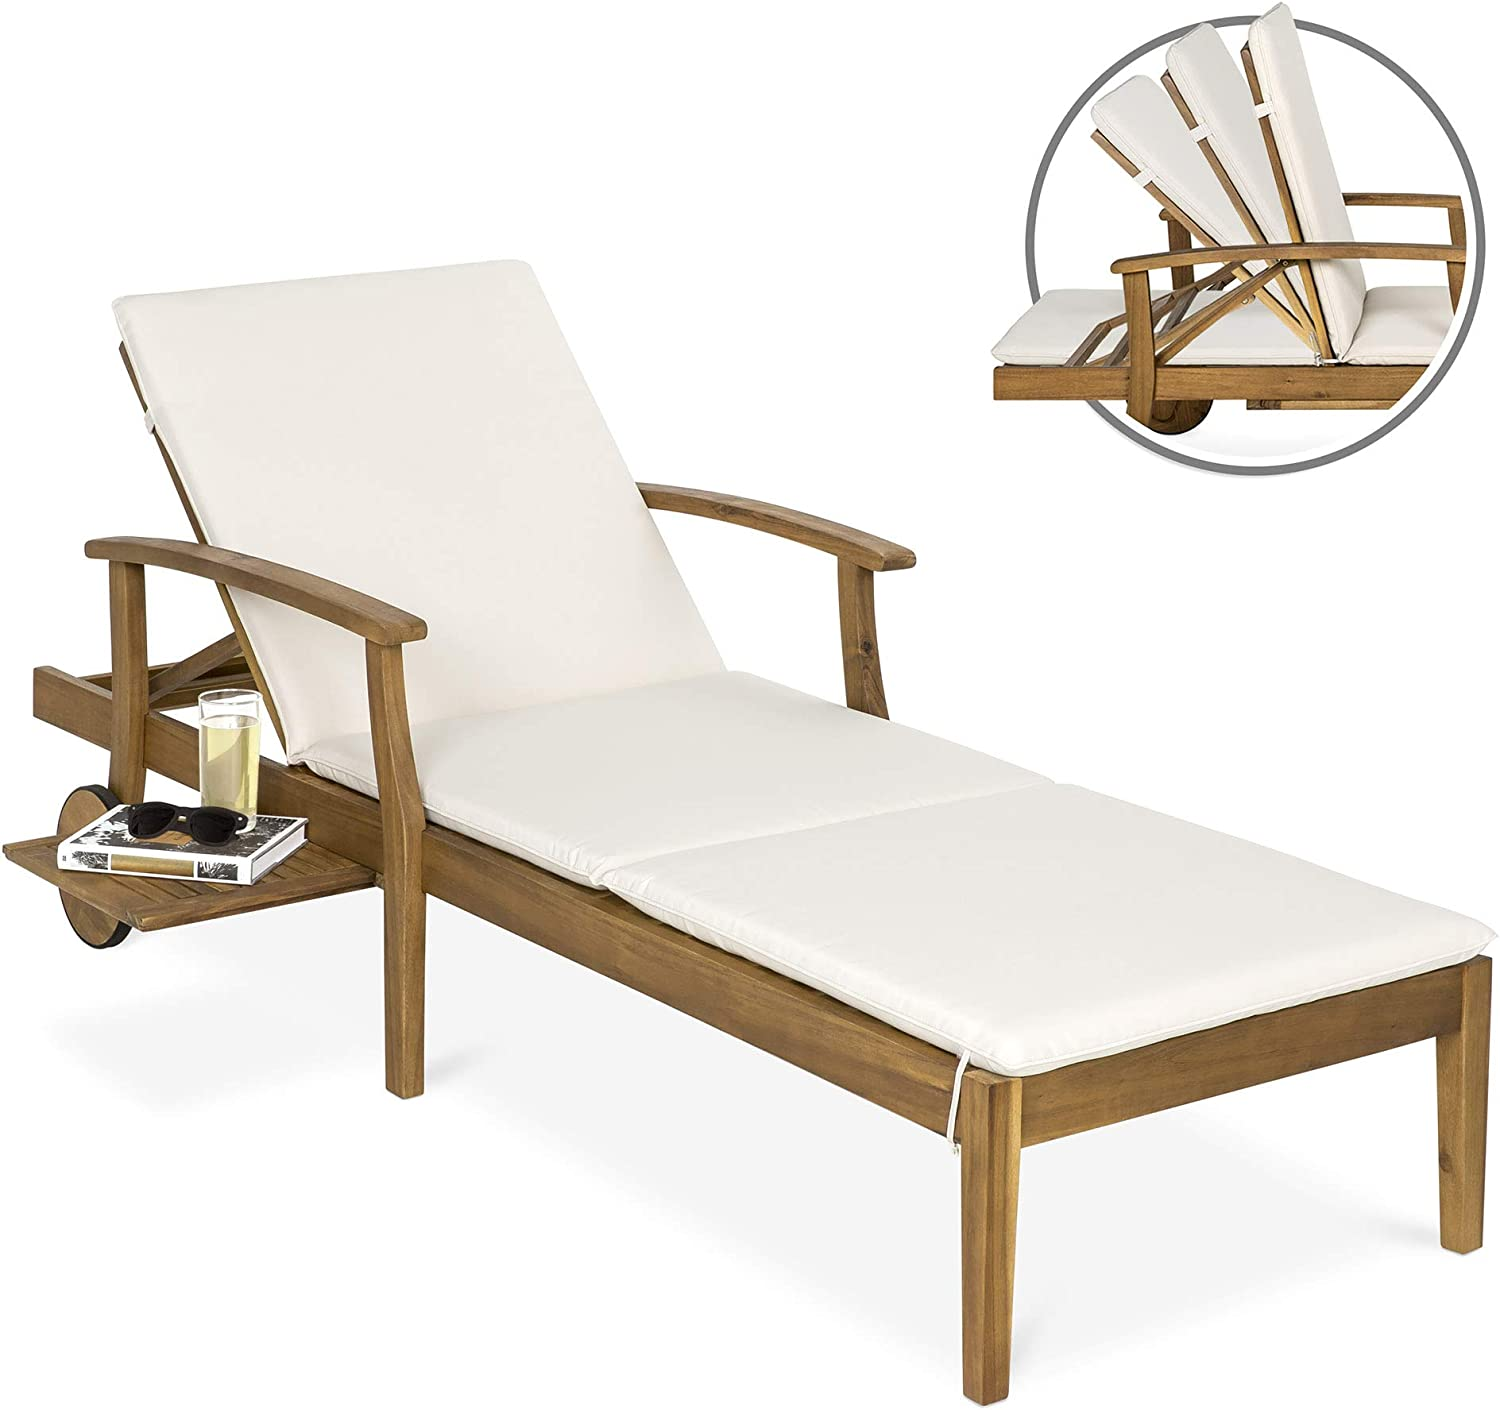 - Amazon.com : Best Choice Products 79x30in Acacia Wood Outdoor